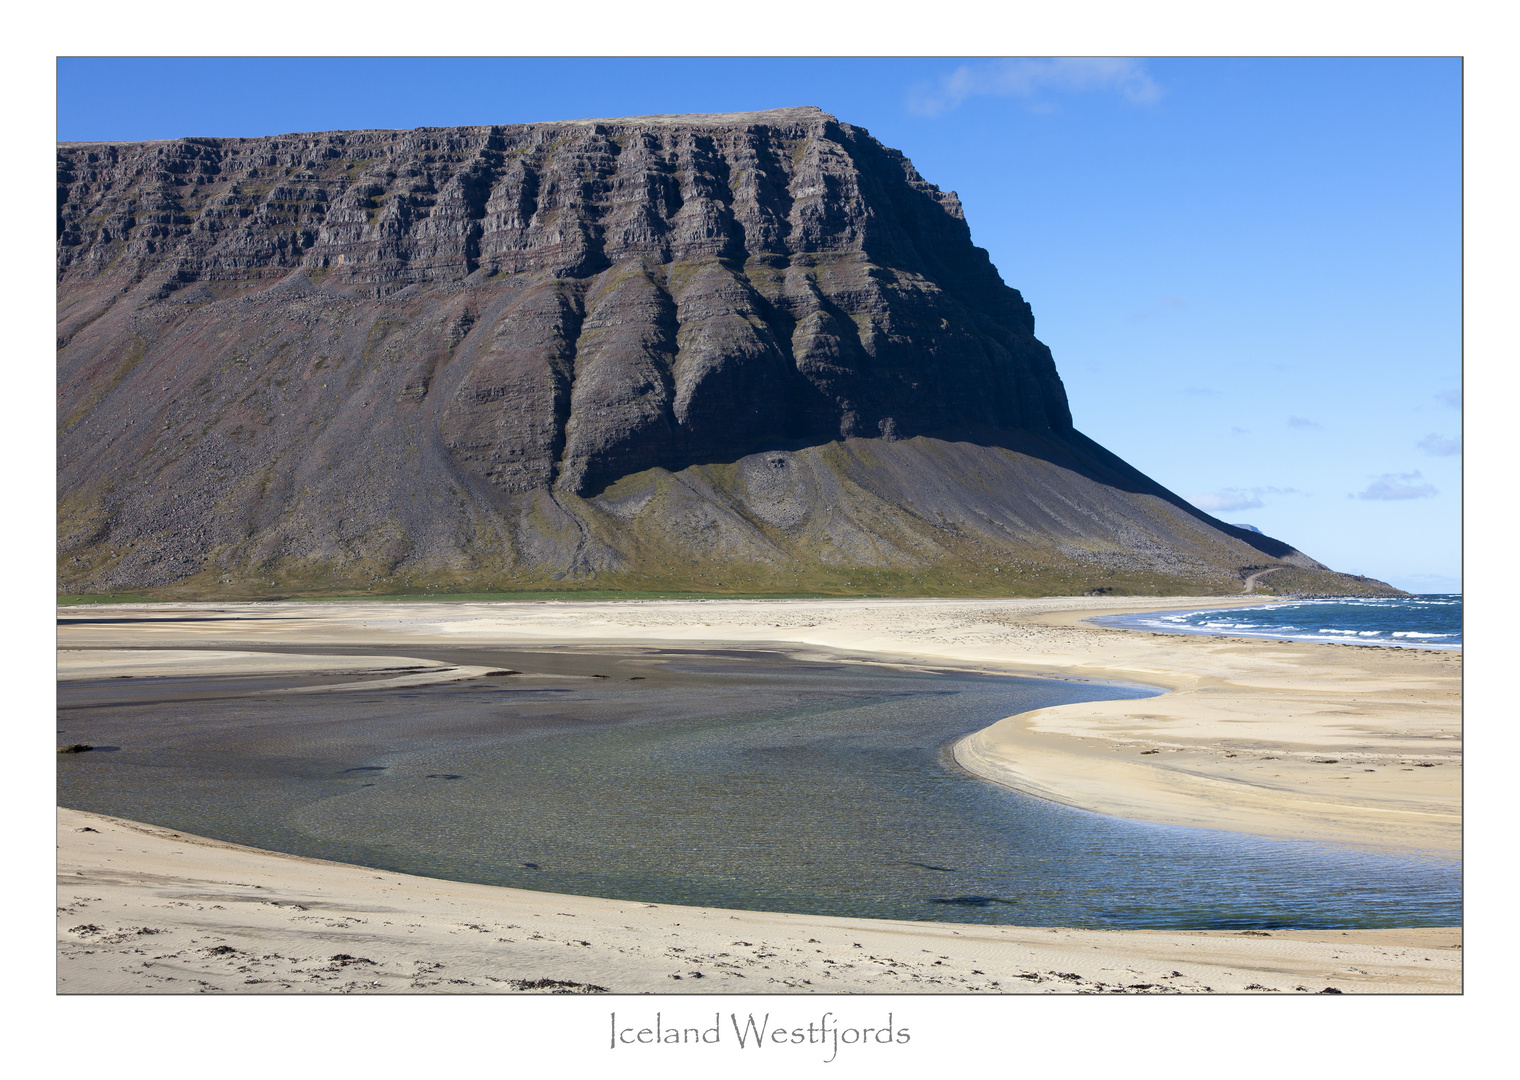 Island - Fantastische Formationen in den Westfjords